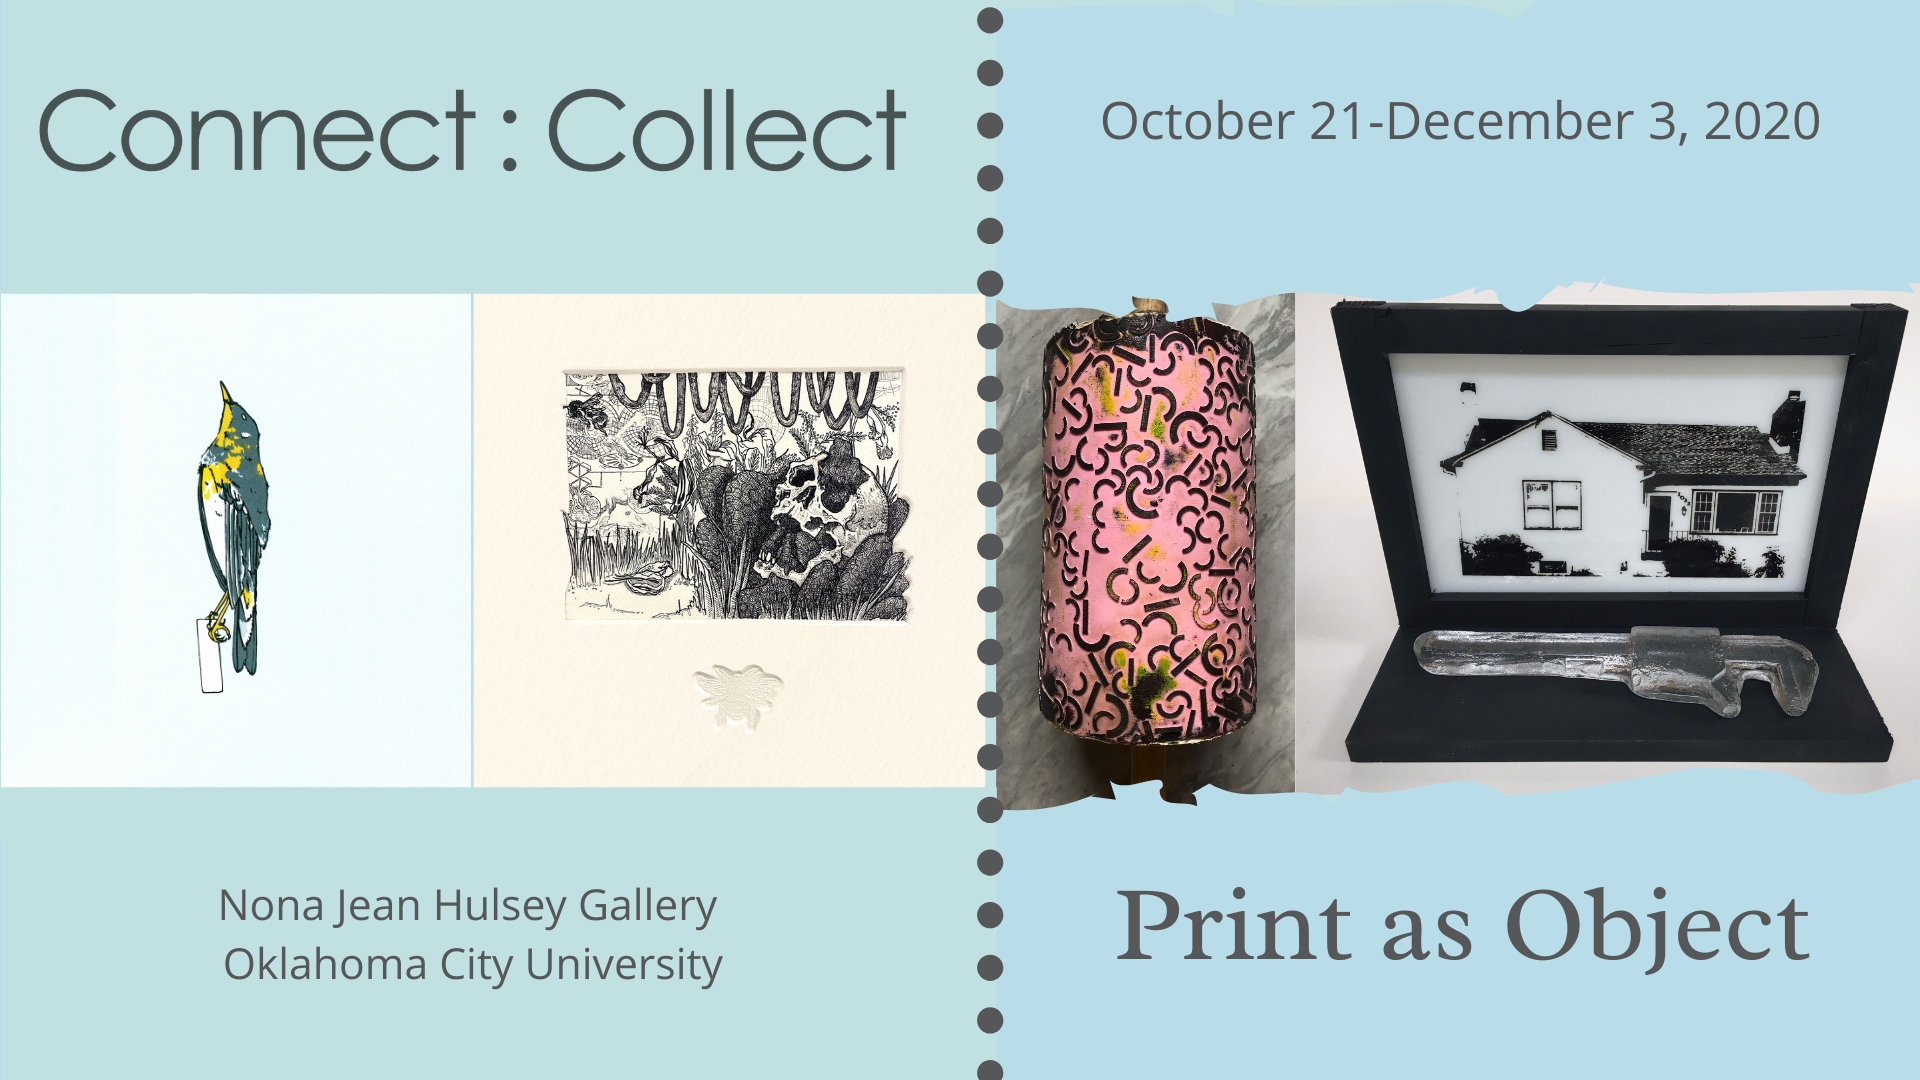 Connect Collect: Print As Object - Nona Jean Hulsey Gallery, Oklahoma City University, October 21st through December 3, 2020